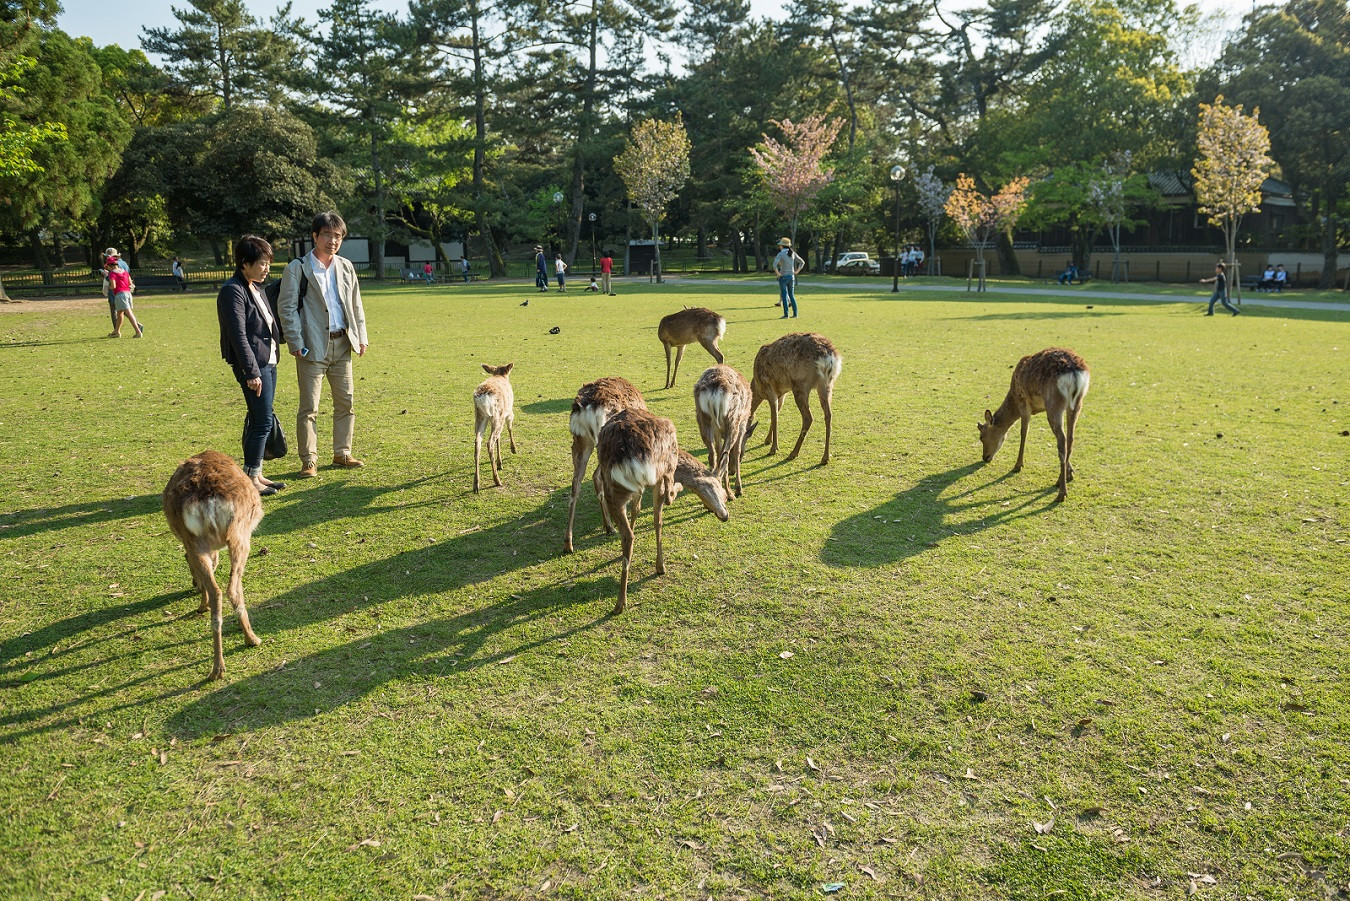 Record number of visitors to Nara Park injured by deer, mostly foreigners